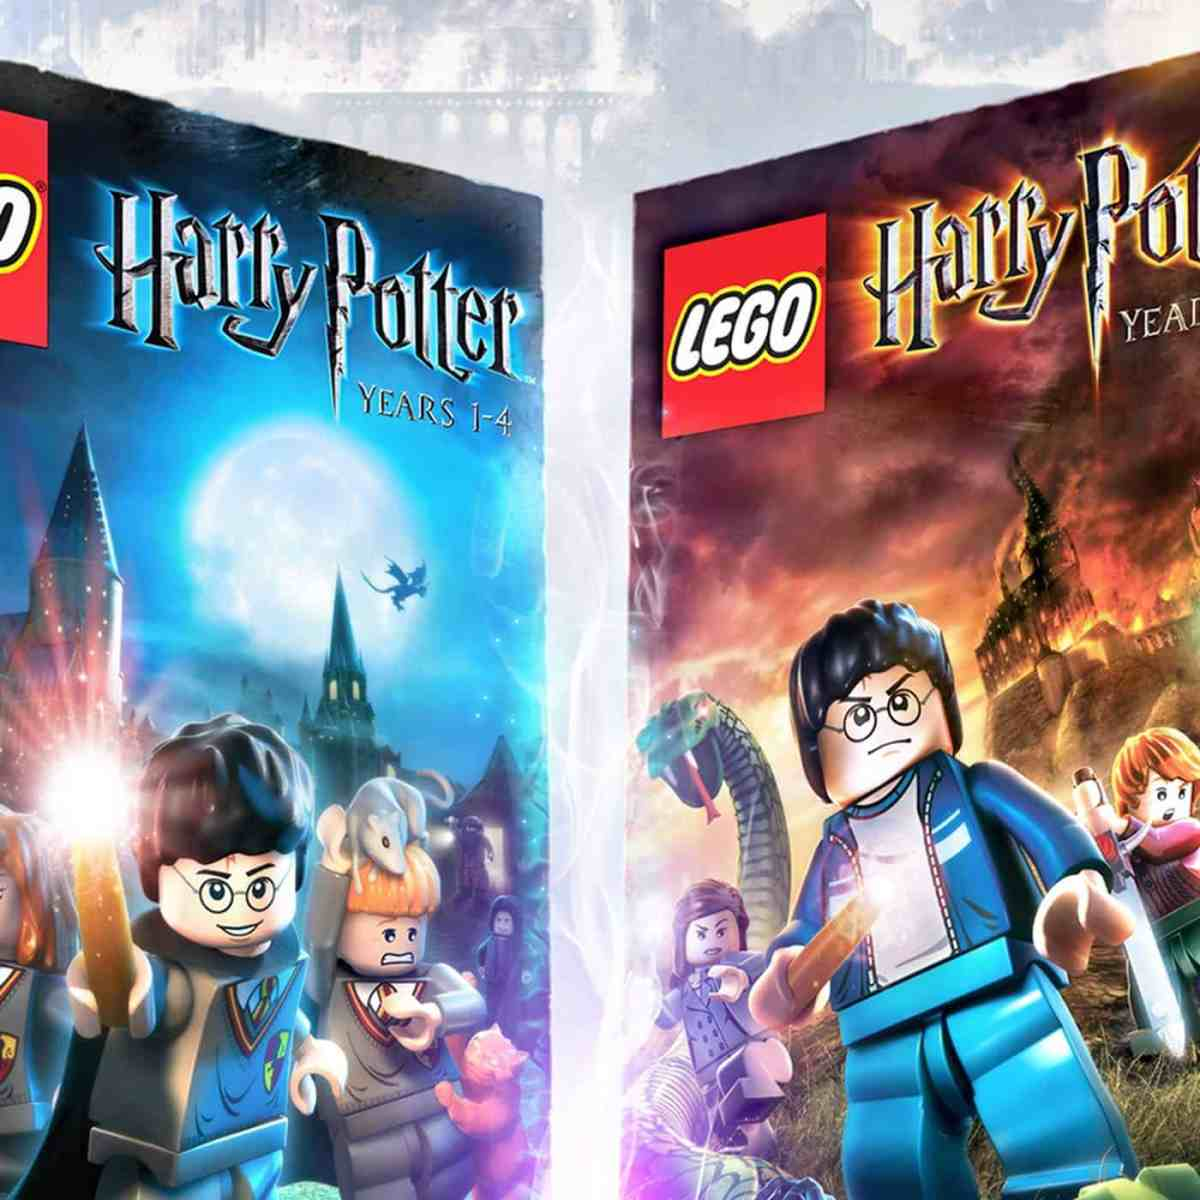 The LEGO Harry Potter Collection